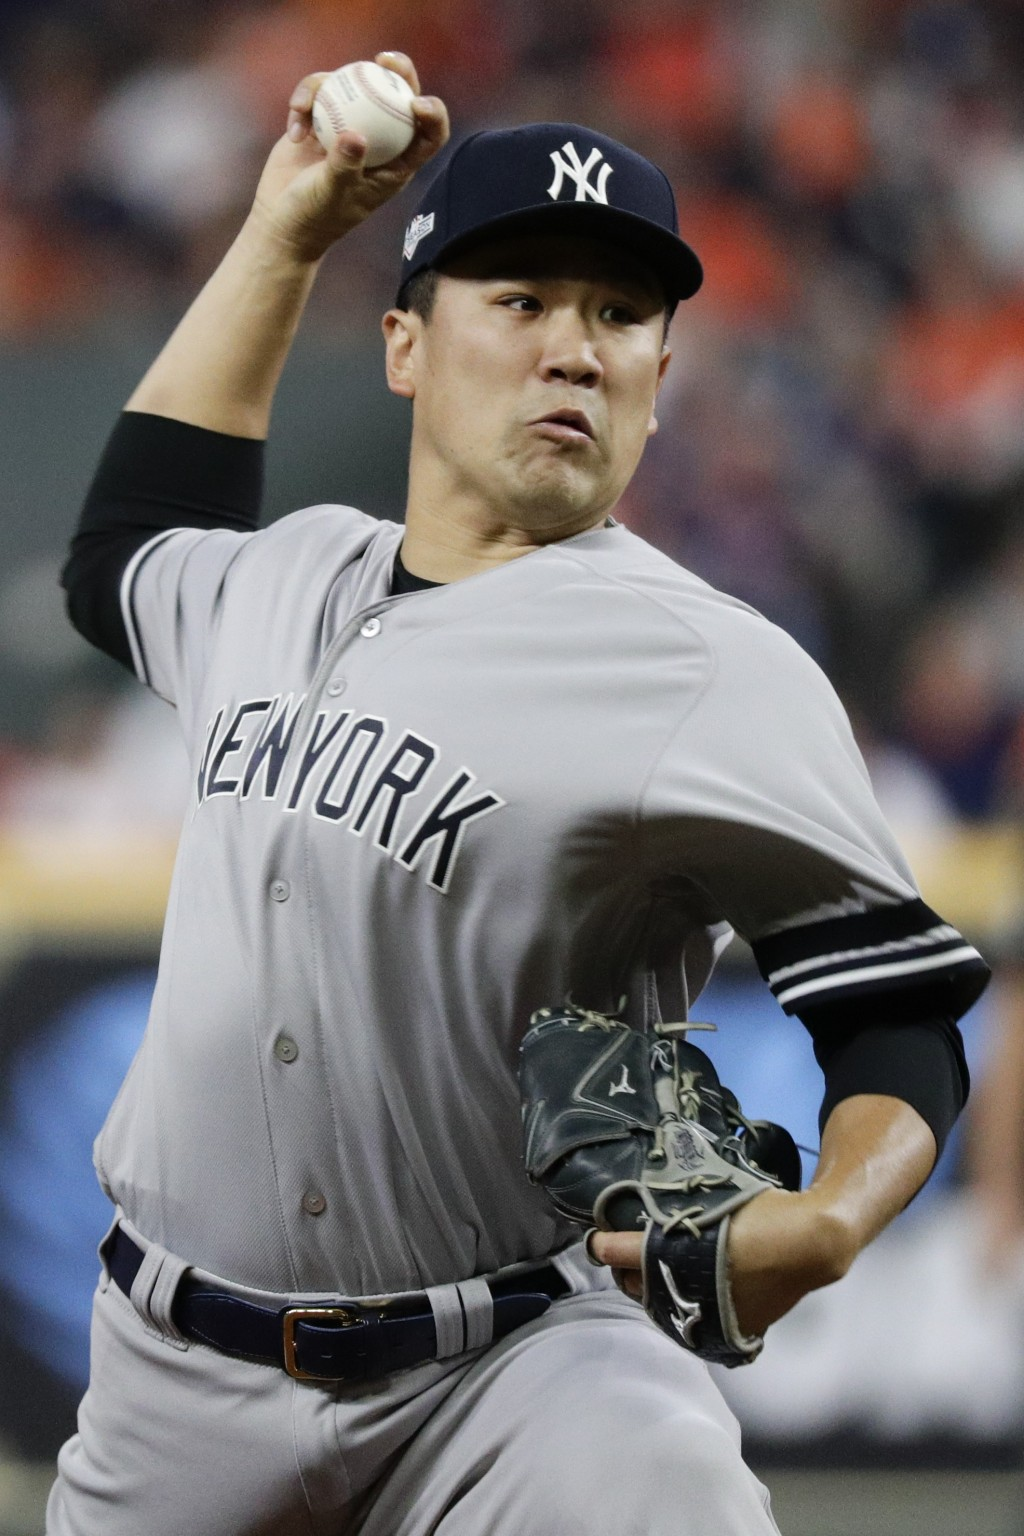 New York Yankees starting pitcher Masahiro Tanaka throws against the Houston Astros during the first inning in Game 1 of baseball's American League Ch...